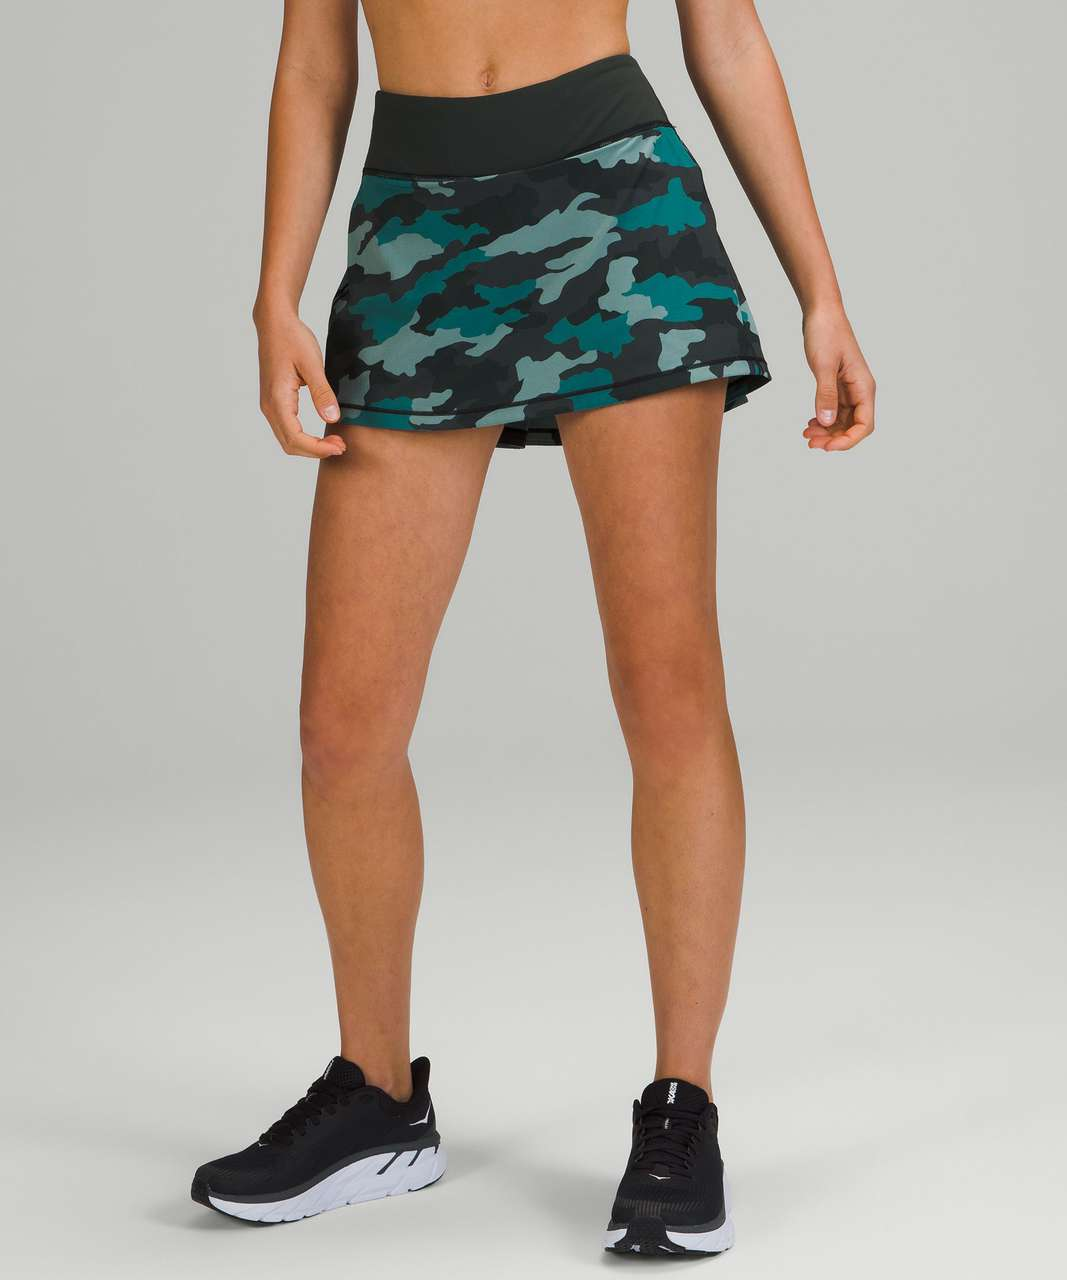 Lululemon Pace Rival Mid-Rise Skirt - Heritage 365 Camo Tidewater Teal Multi / Rainforest Green